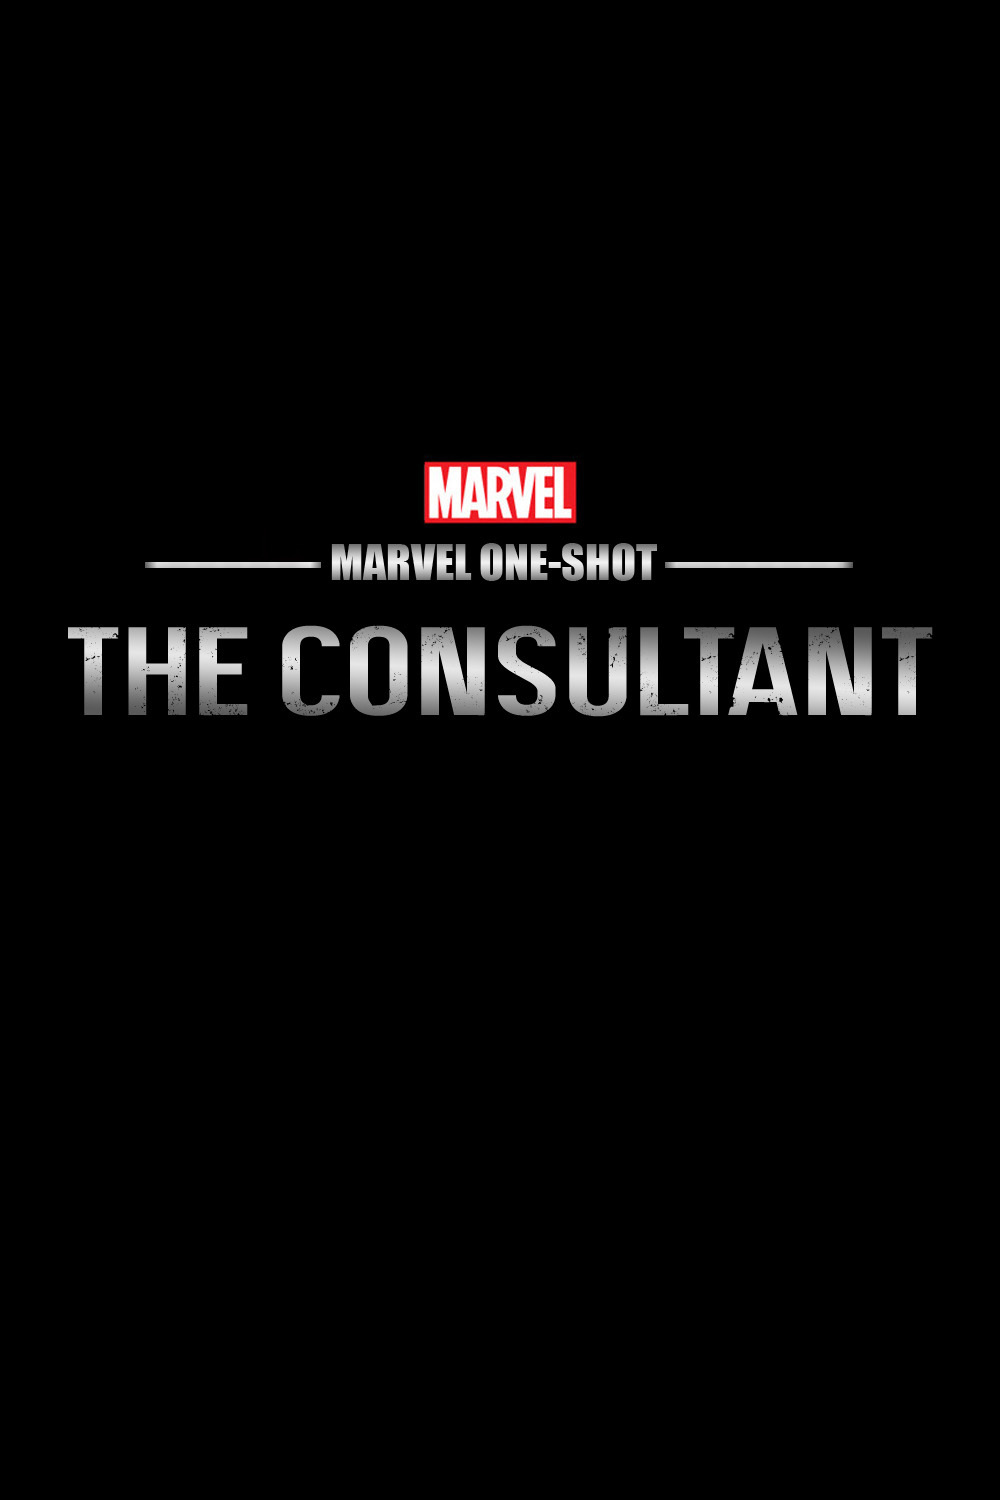 Marvel One-Shot - The Consultant